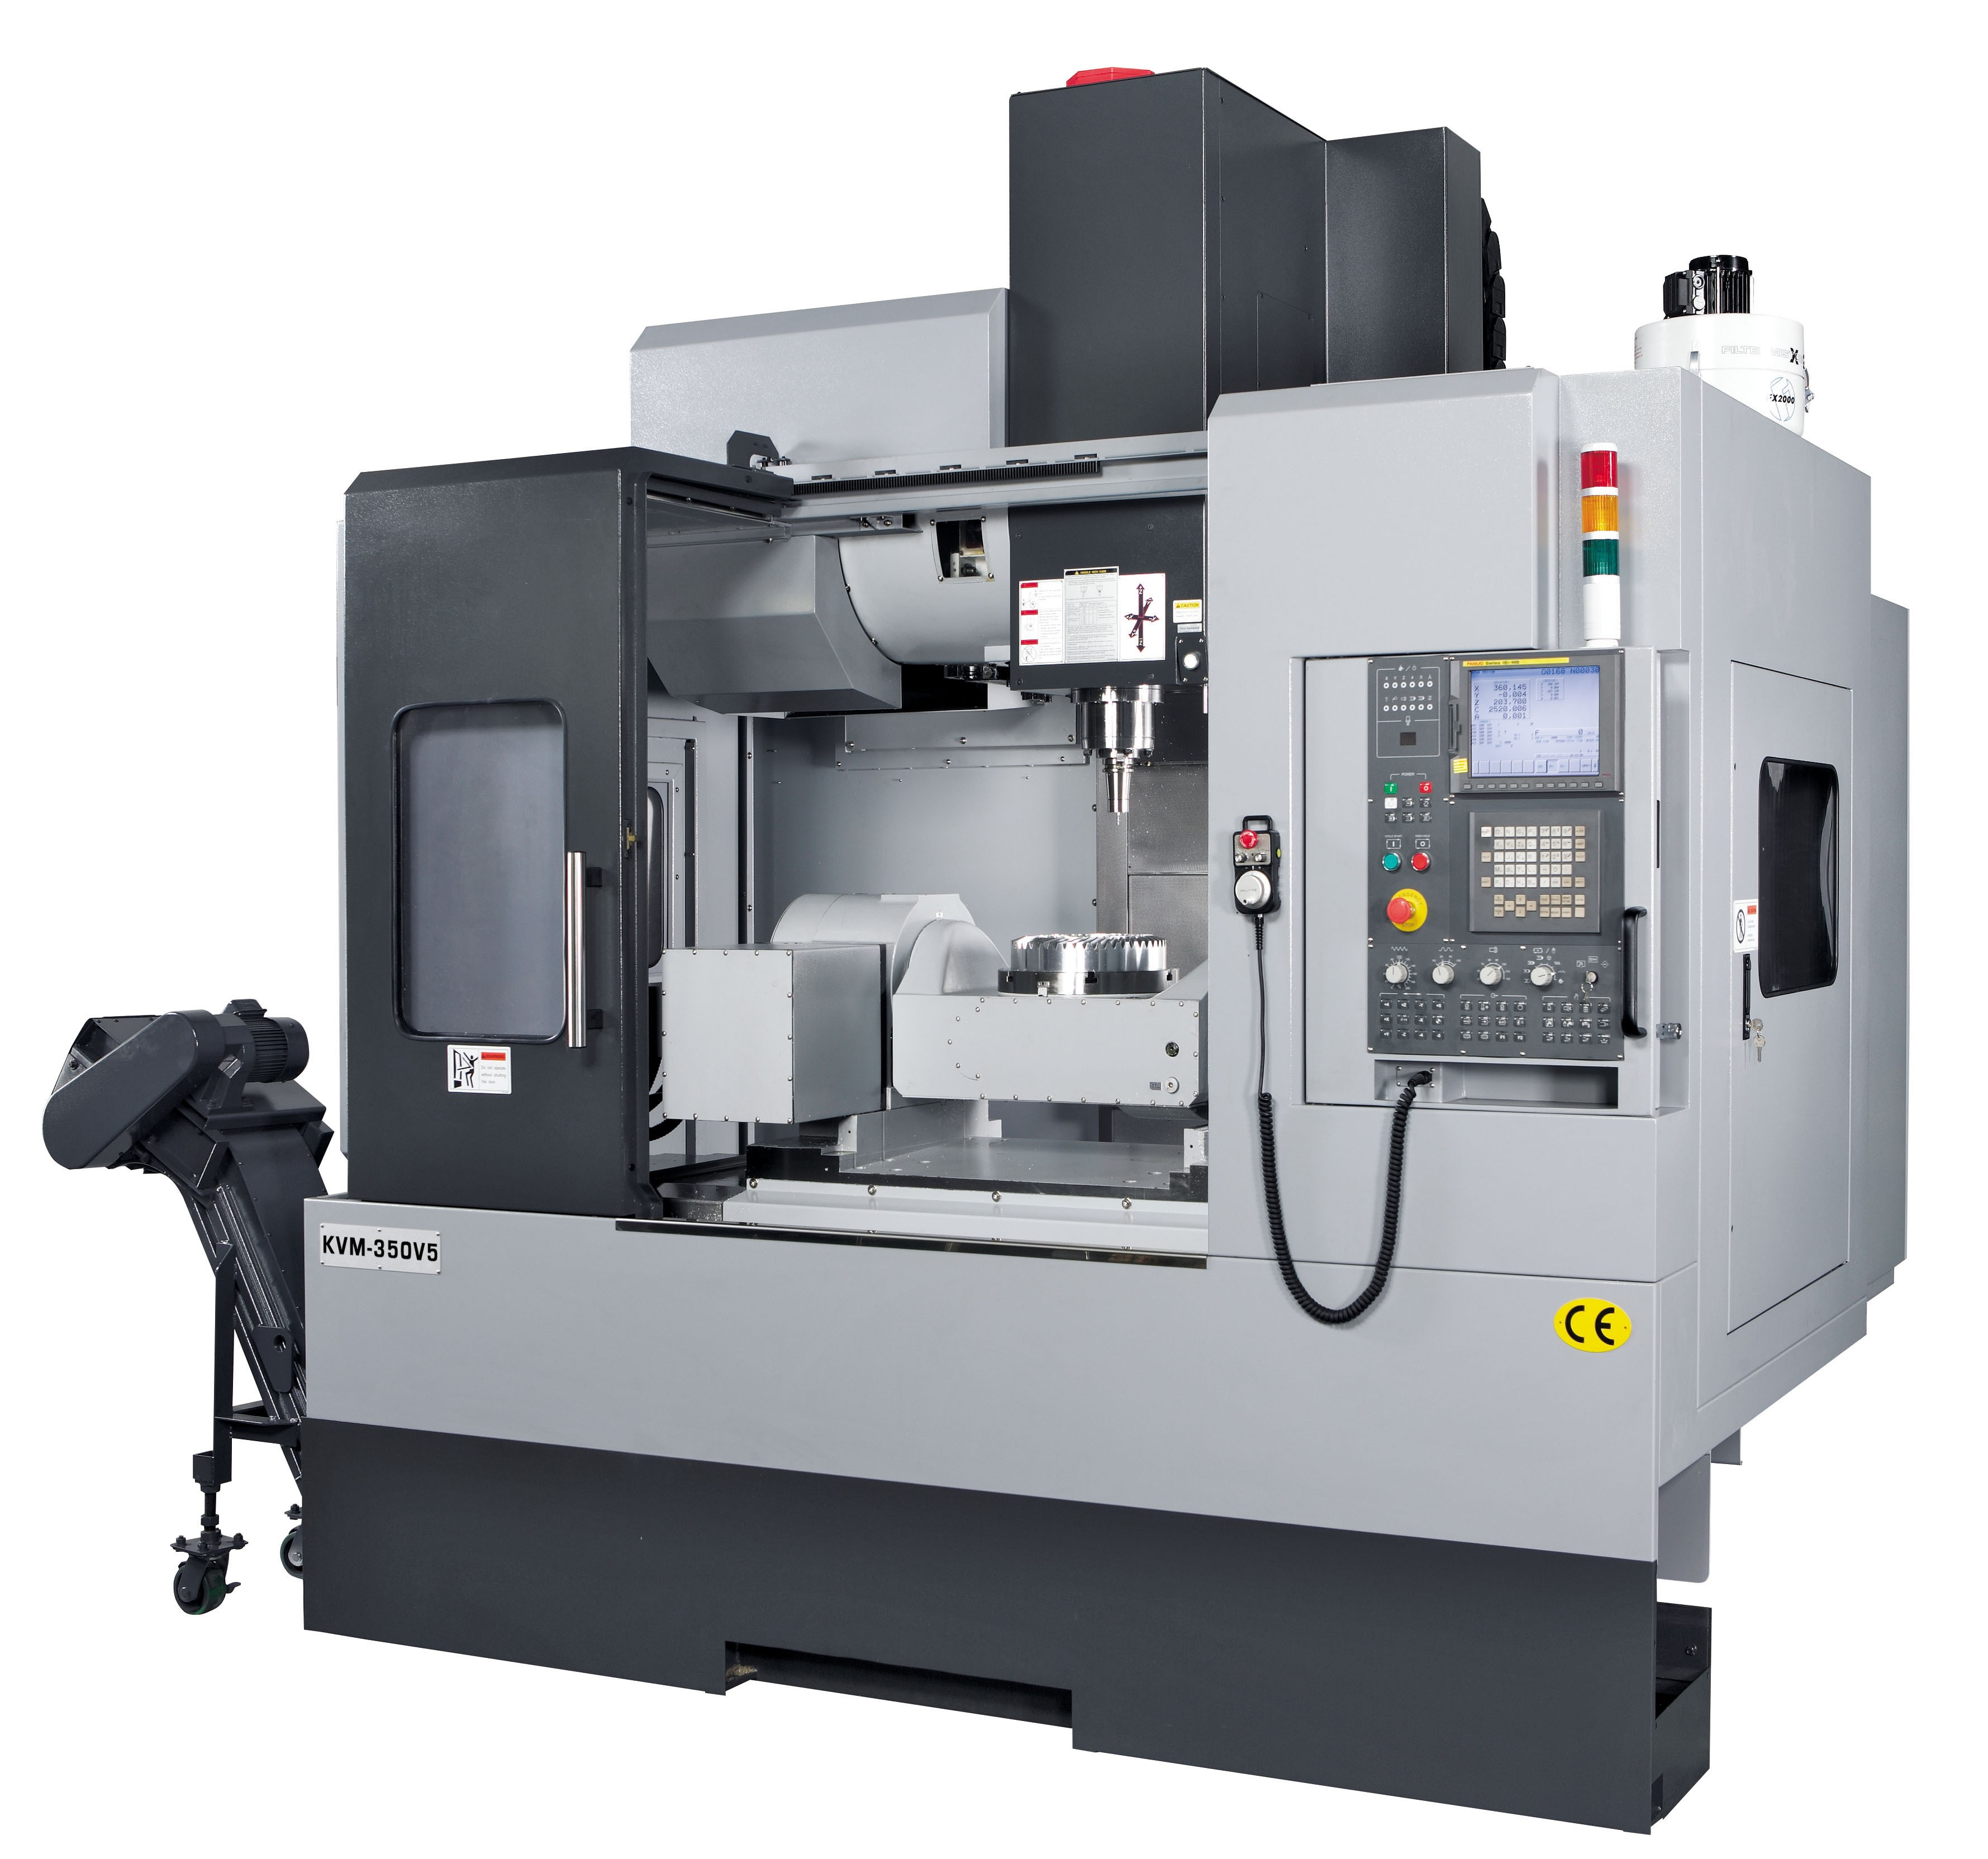 Kent KVM-350V5 - 5 Axis Machining Center